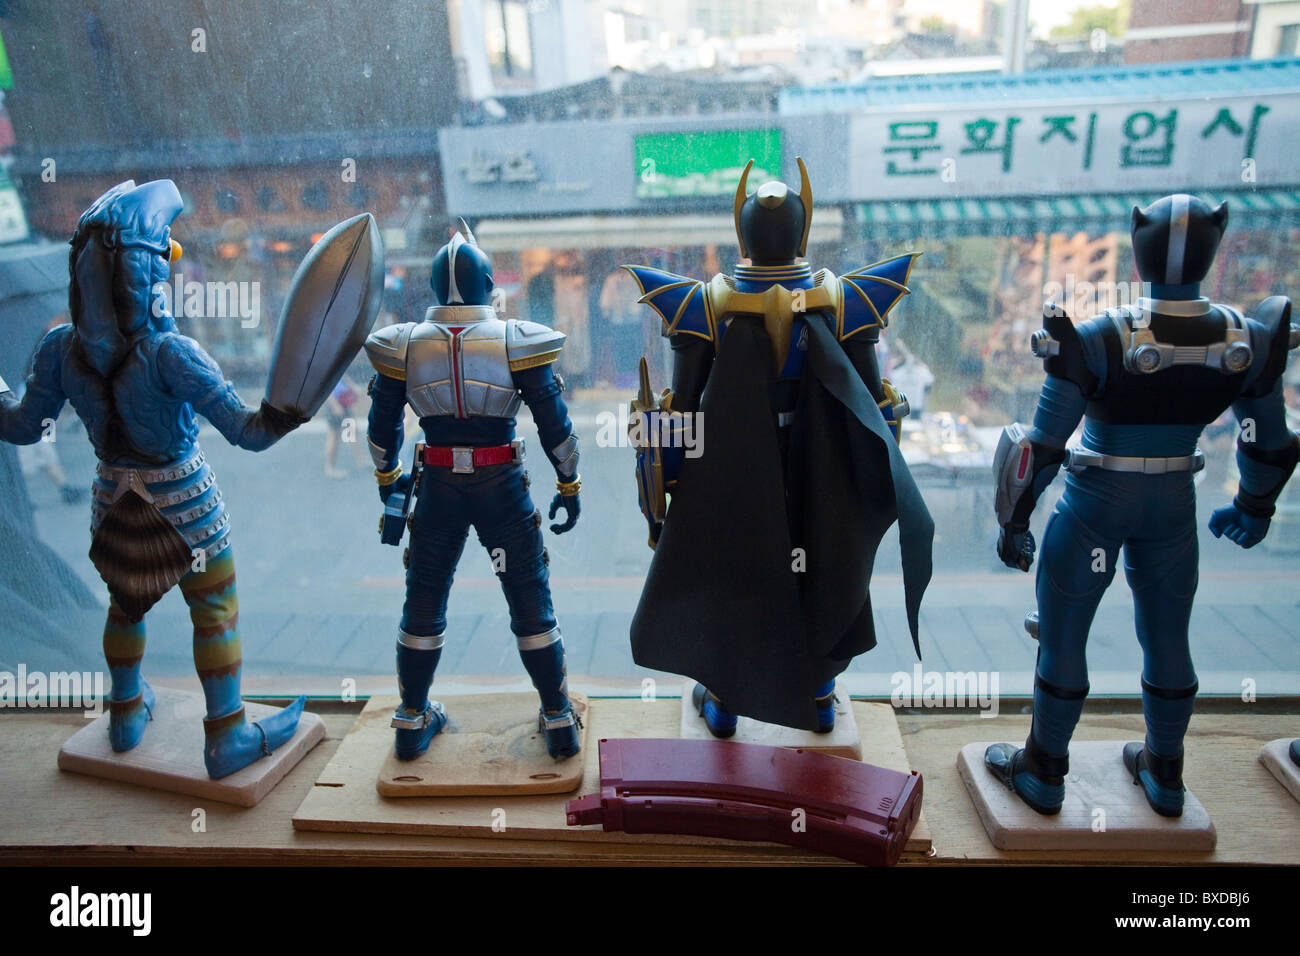 Toys looking out of the Toy  Museum window in Seoul, South Korea - Stock Image